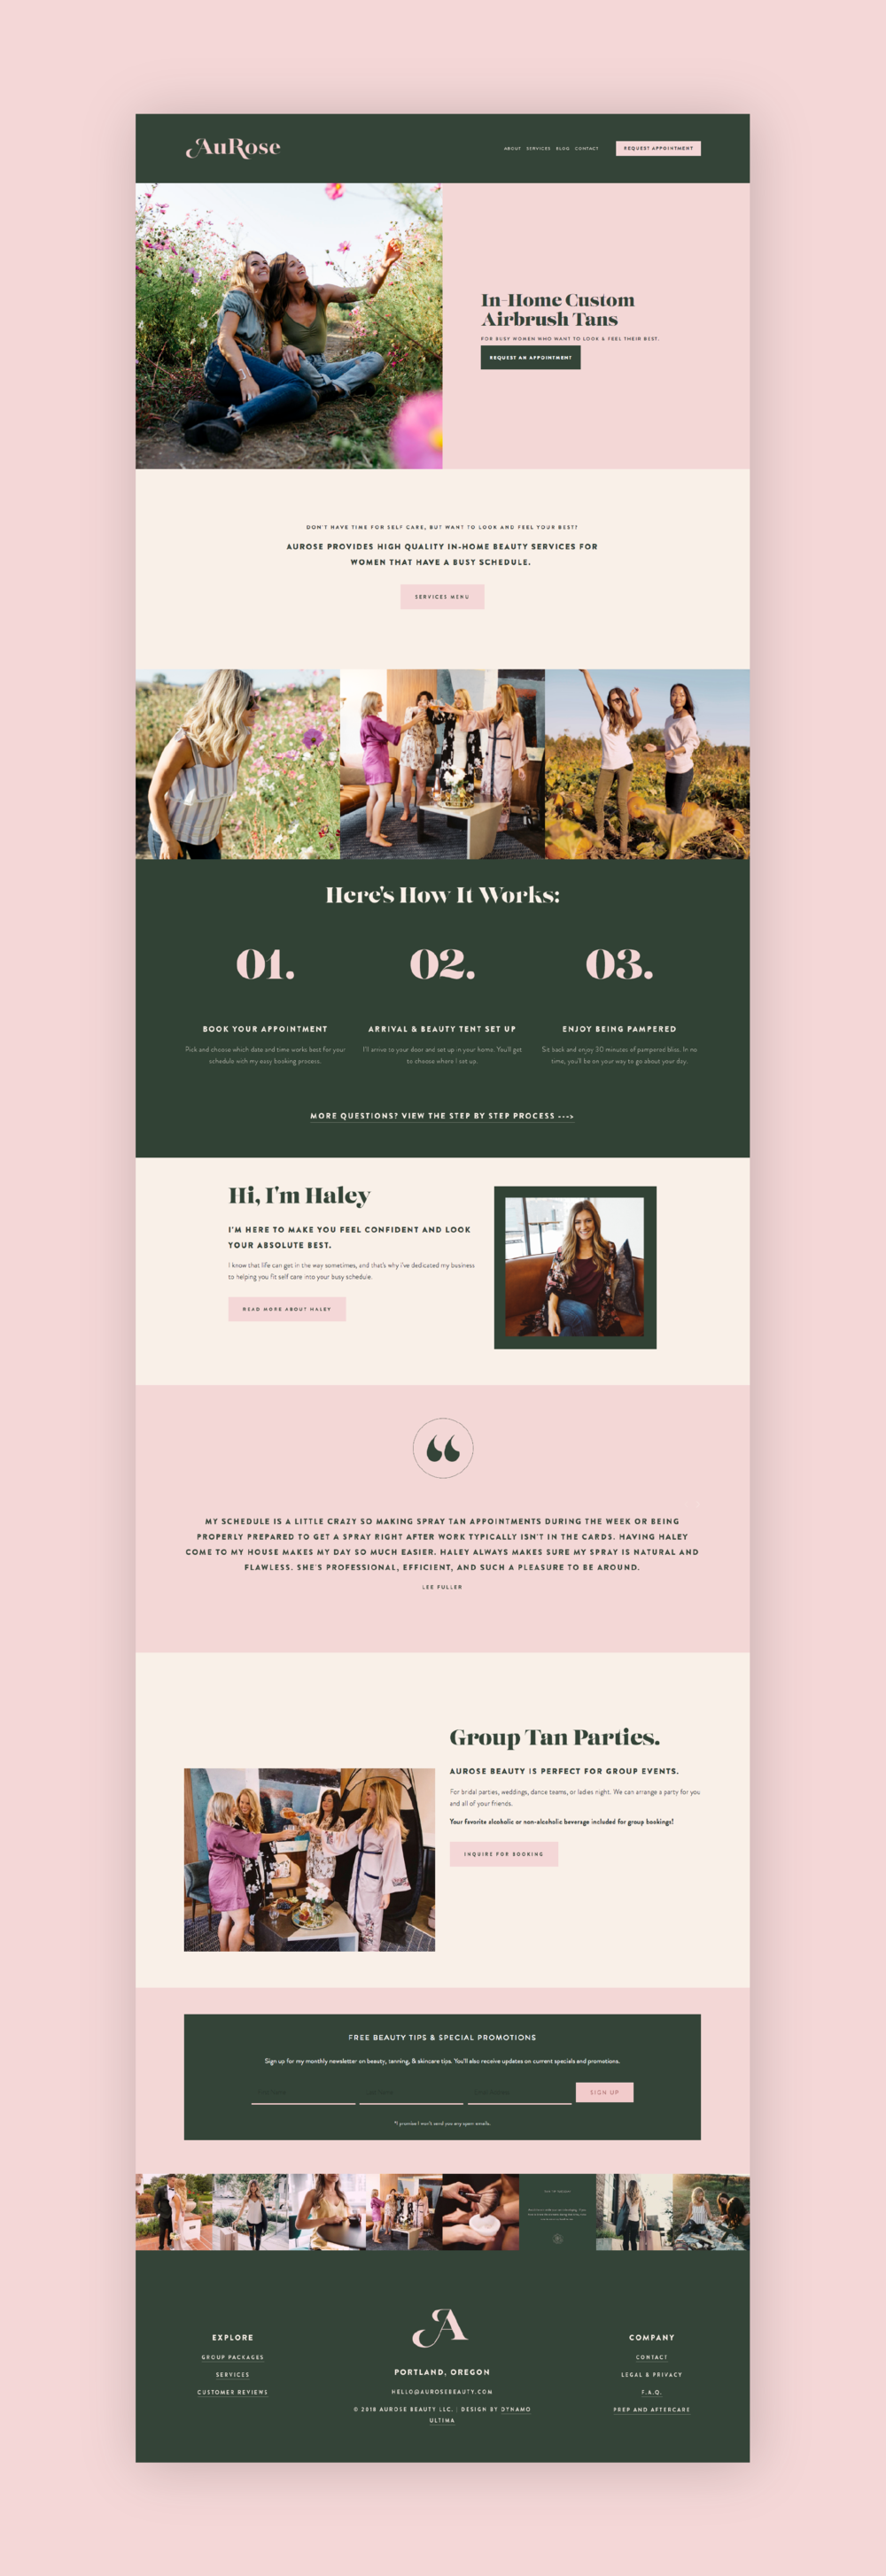 aurose-website-present.png